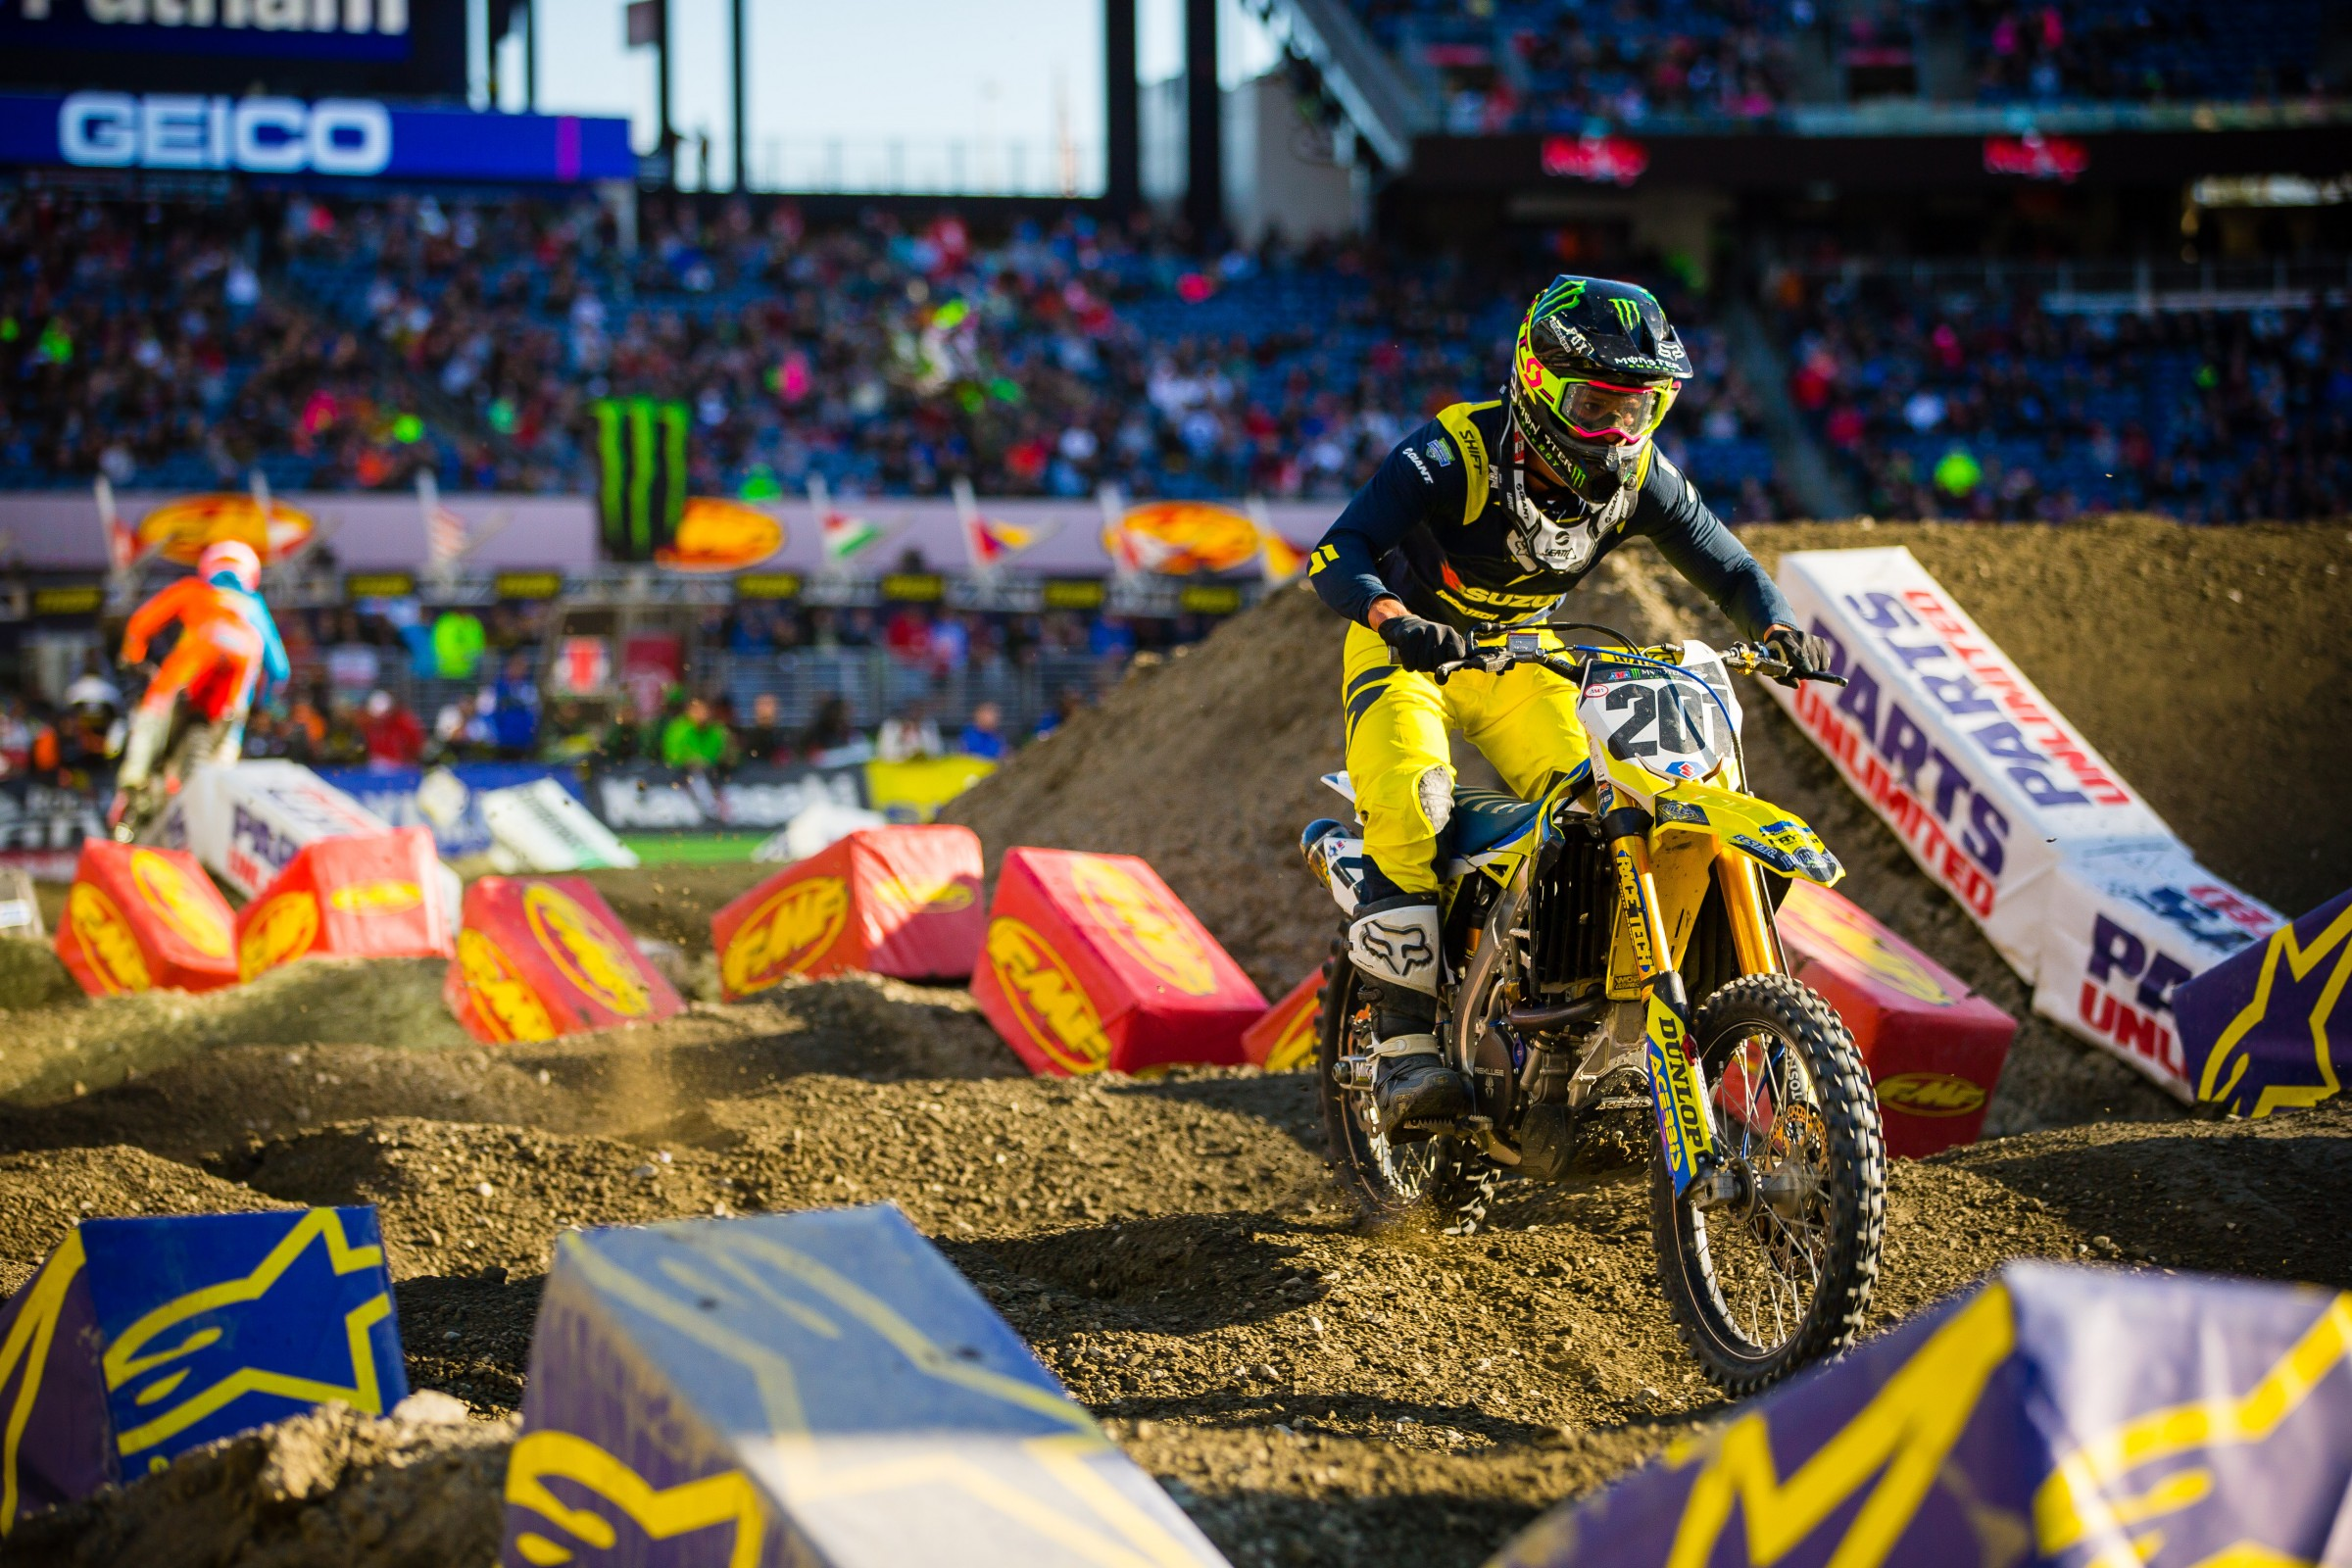 The team is also helping Frenchman Cedric Soubeyras, who placed 15th in 450SX at Foxborough.